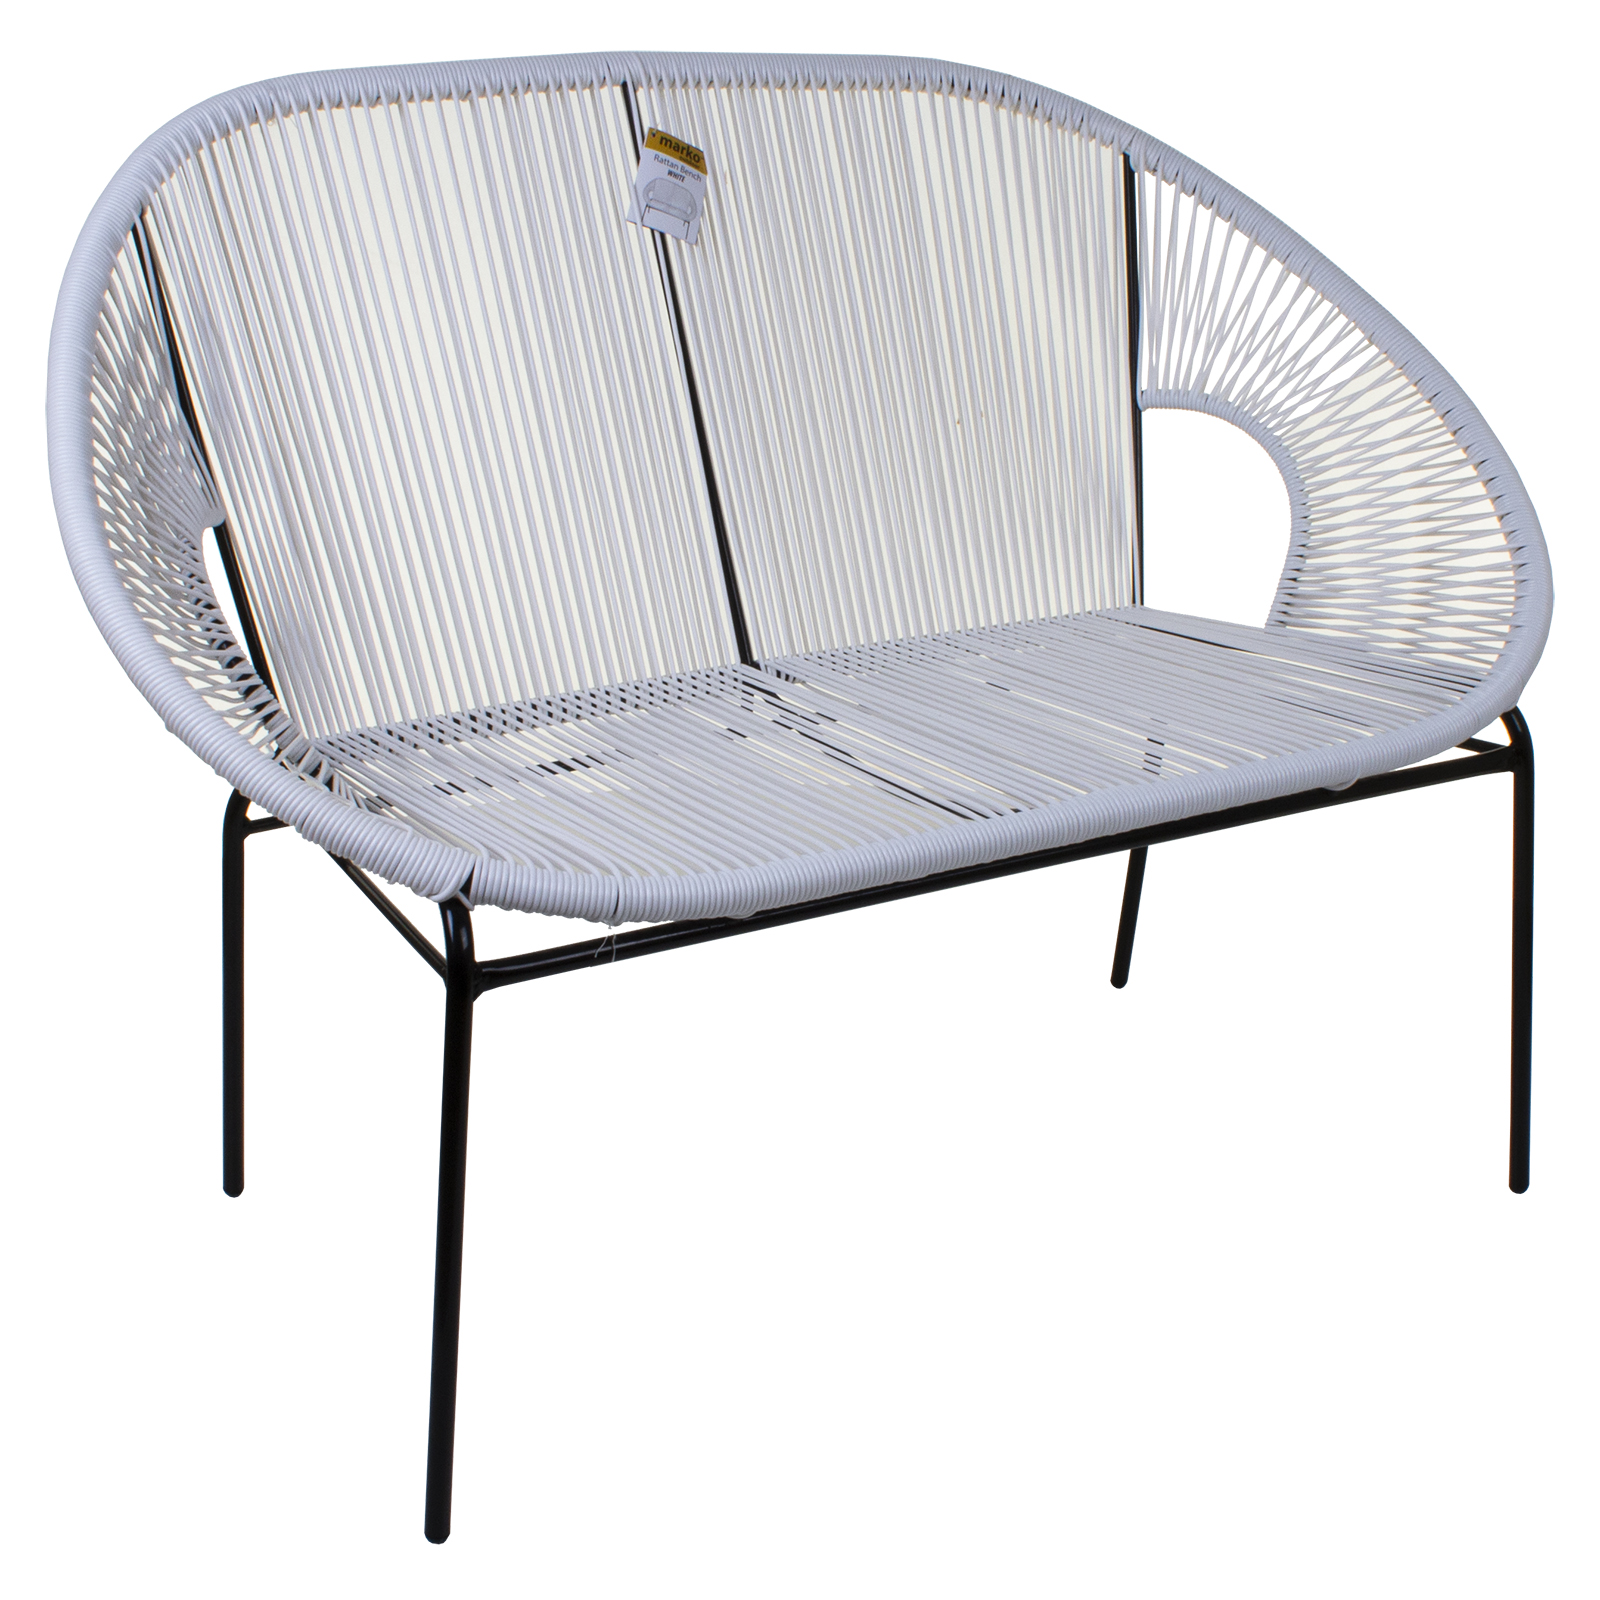 Outstanding Details About 2 Seat White Garden Bench Rattan Egg String Design Loveseat Moon Outdoor Indoor Ocoug Best Dining Table And Chair Ideas Images Ocougorg